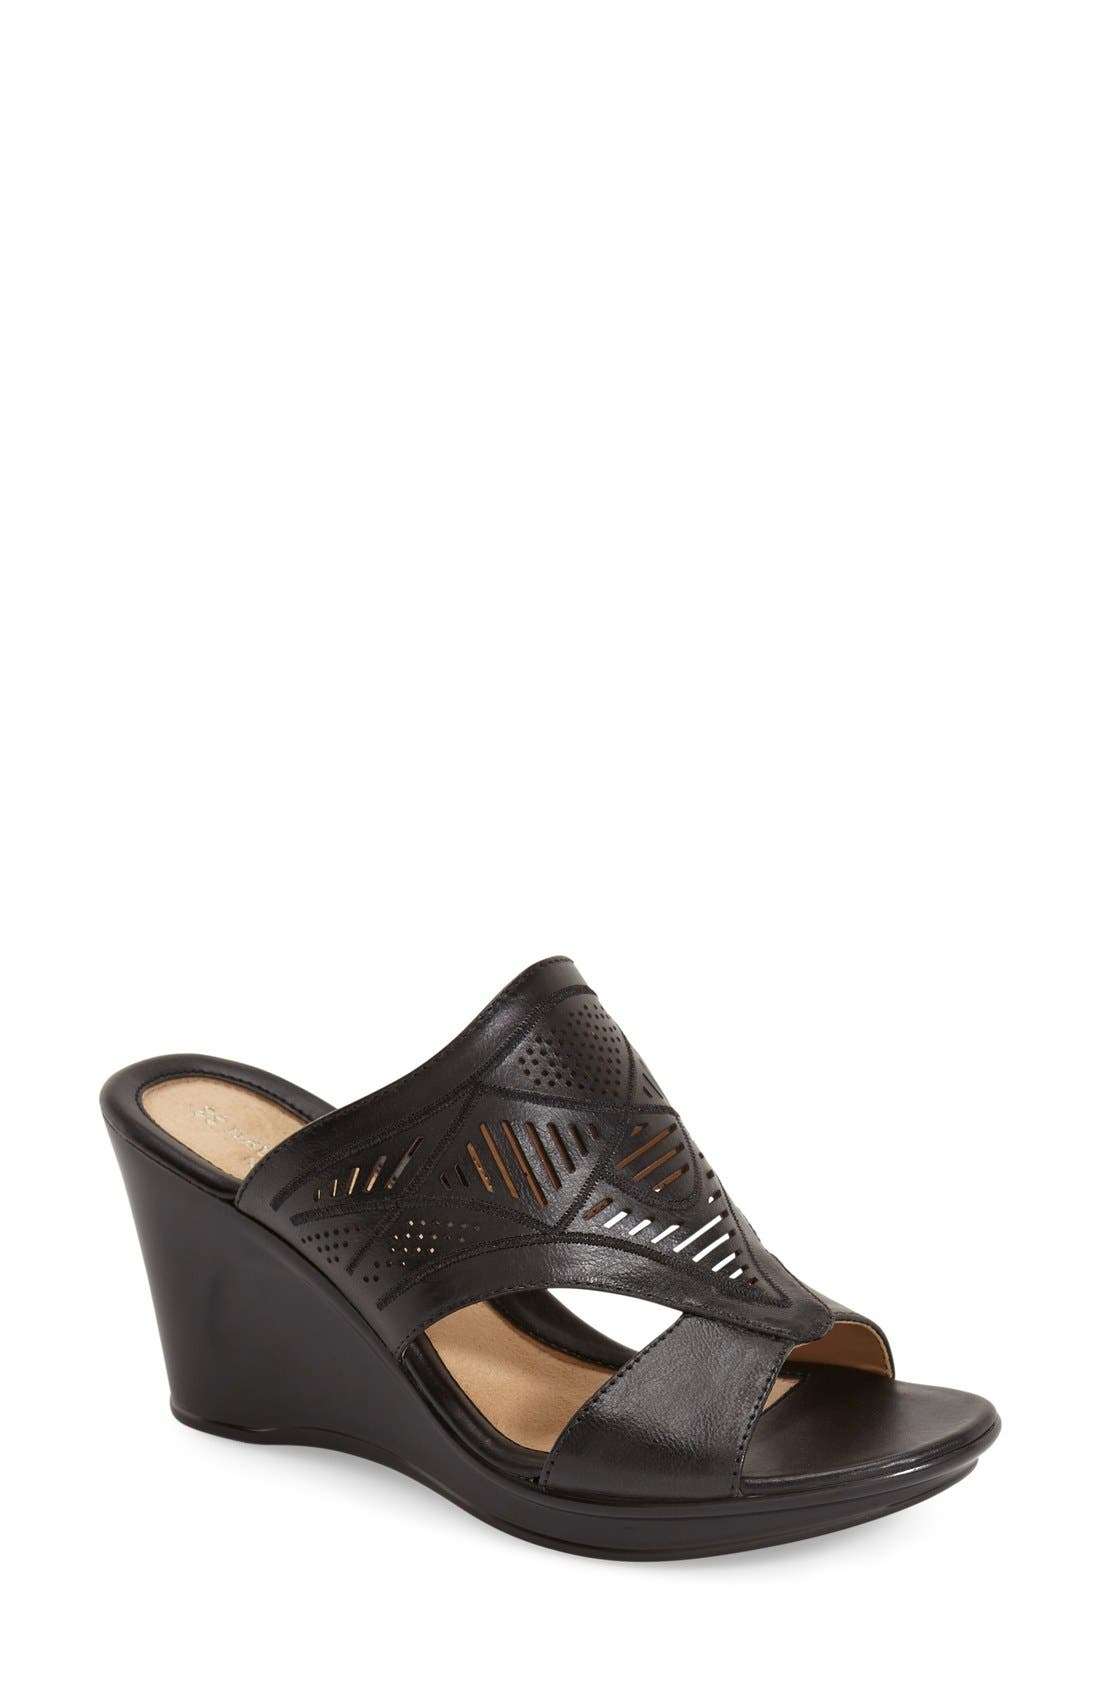 Alternate Image 1 Selected - Naturalizer 'Oshea' Wedge Sandal (Women)